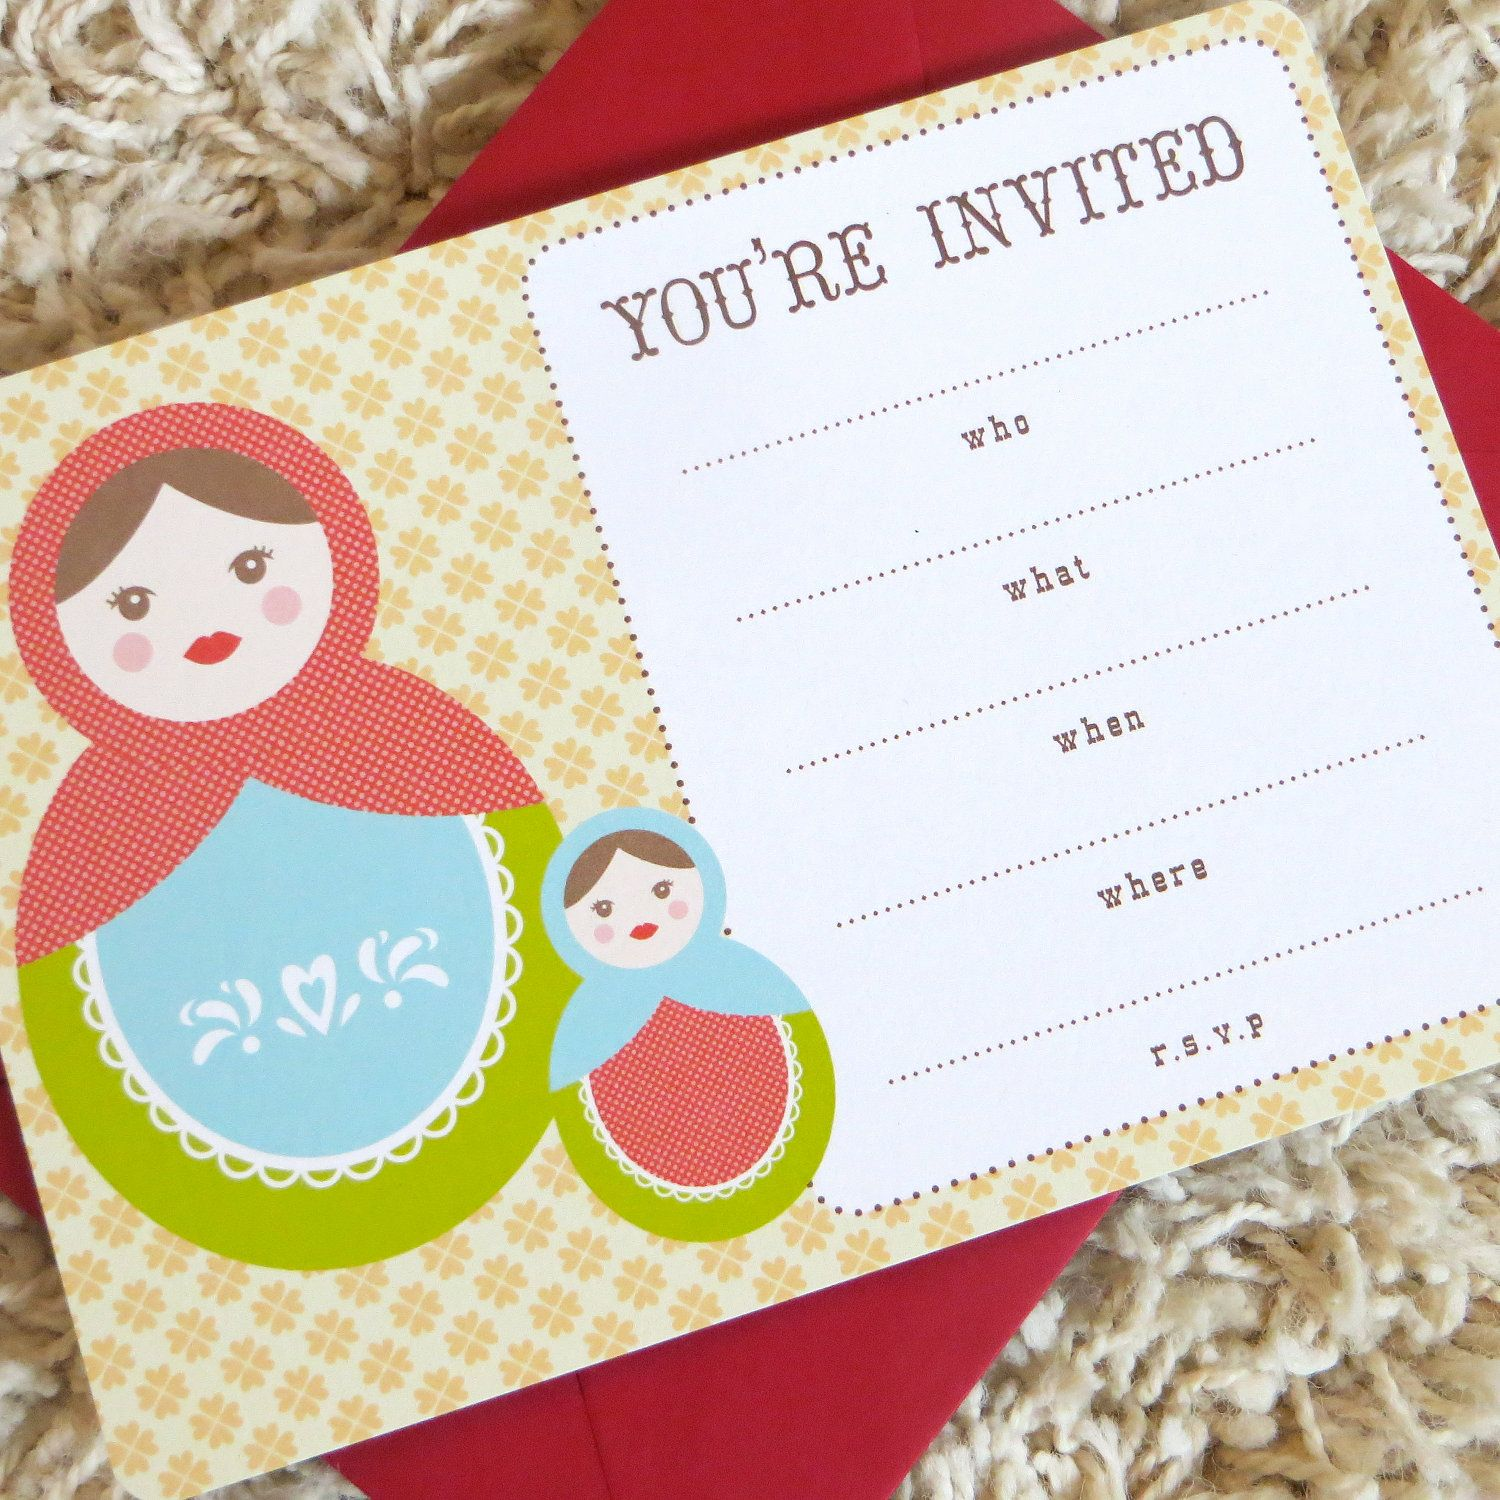 Fill in matryoshka doll invitation russian nesting doll party fill in matryoshka doll invitation russian nesting doll party invitation baby shower invitation kristyandbryce Image collections